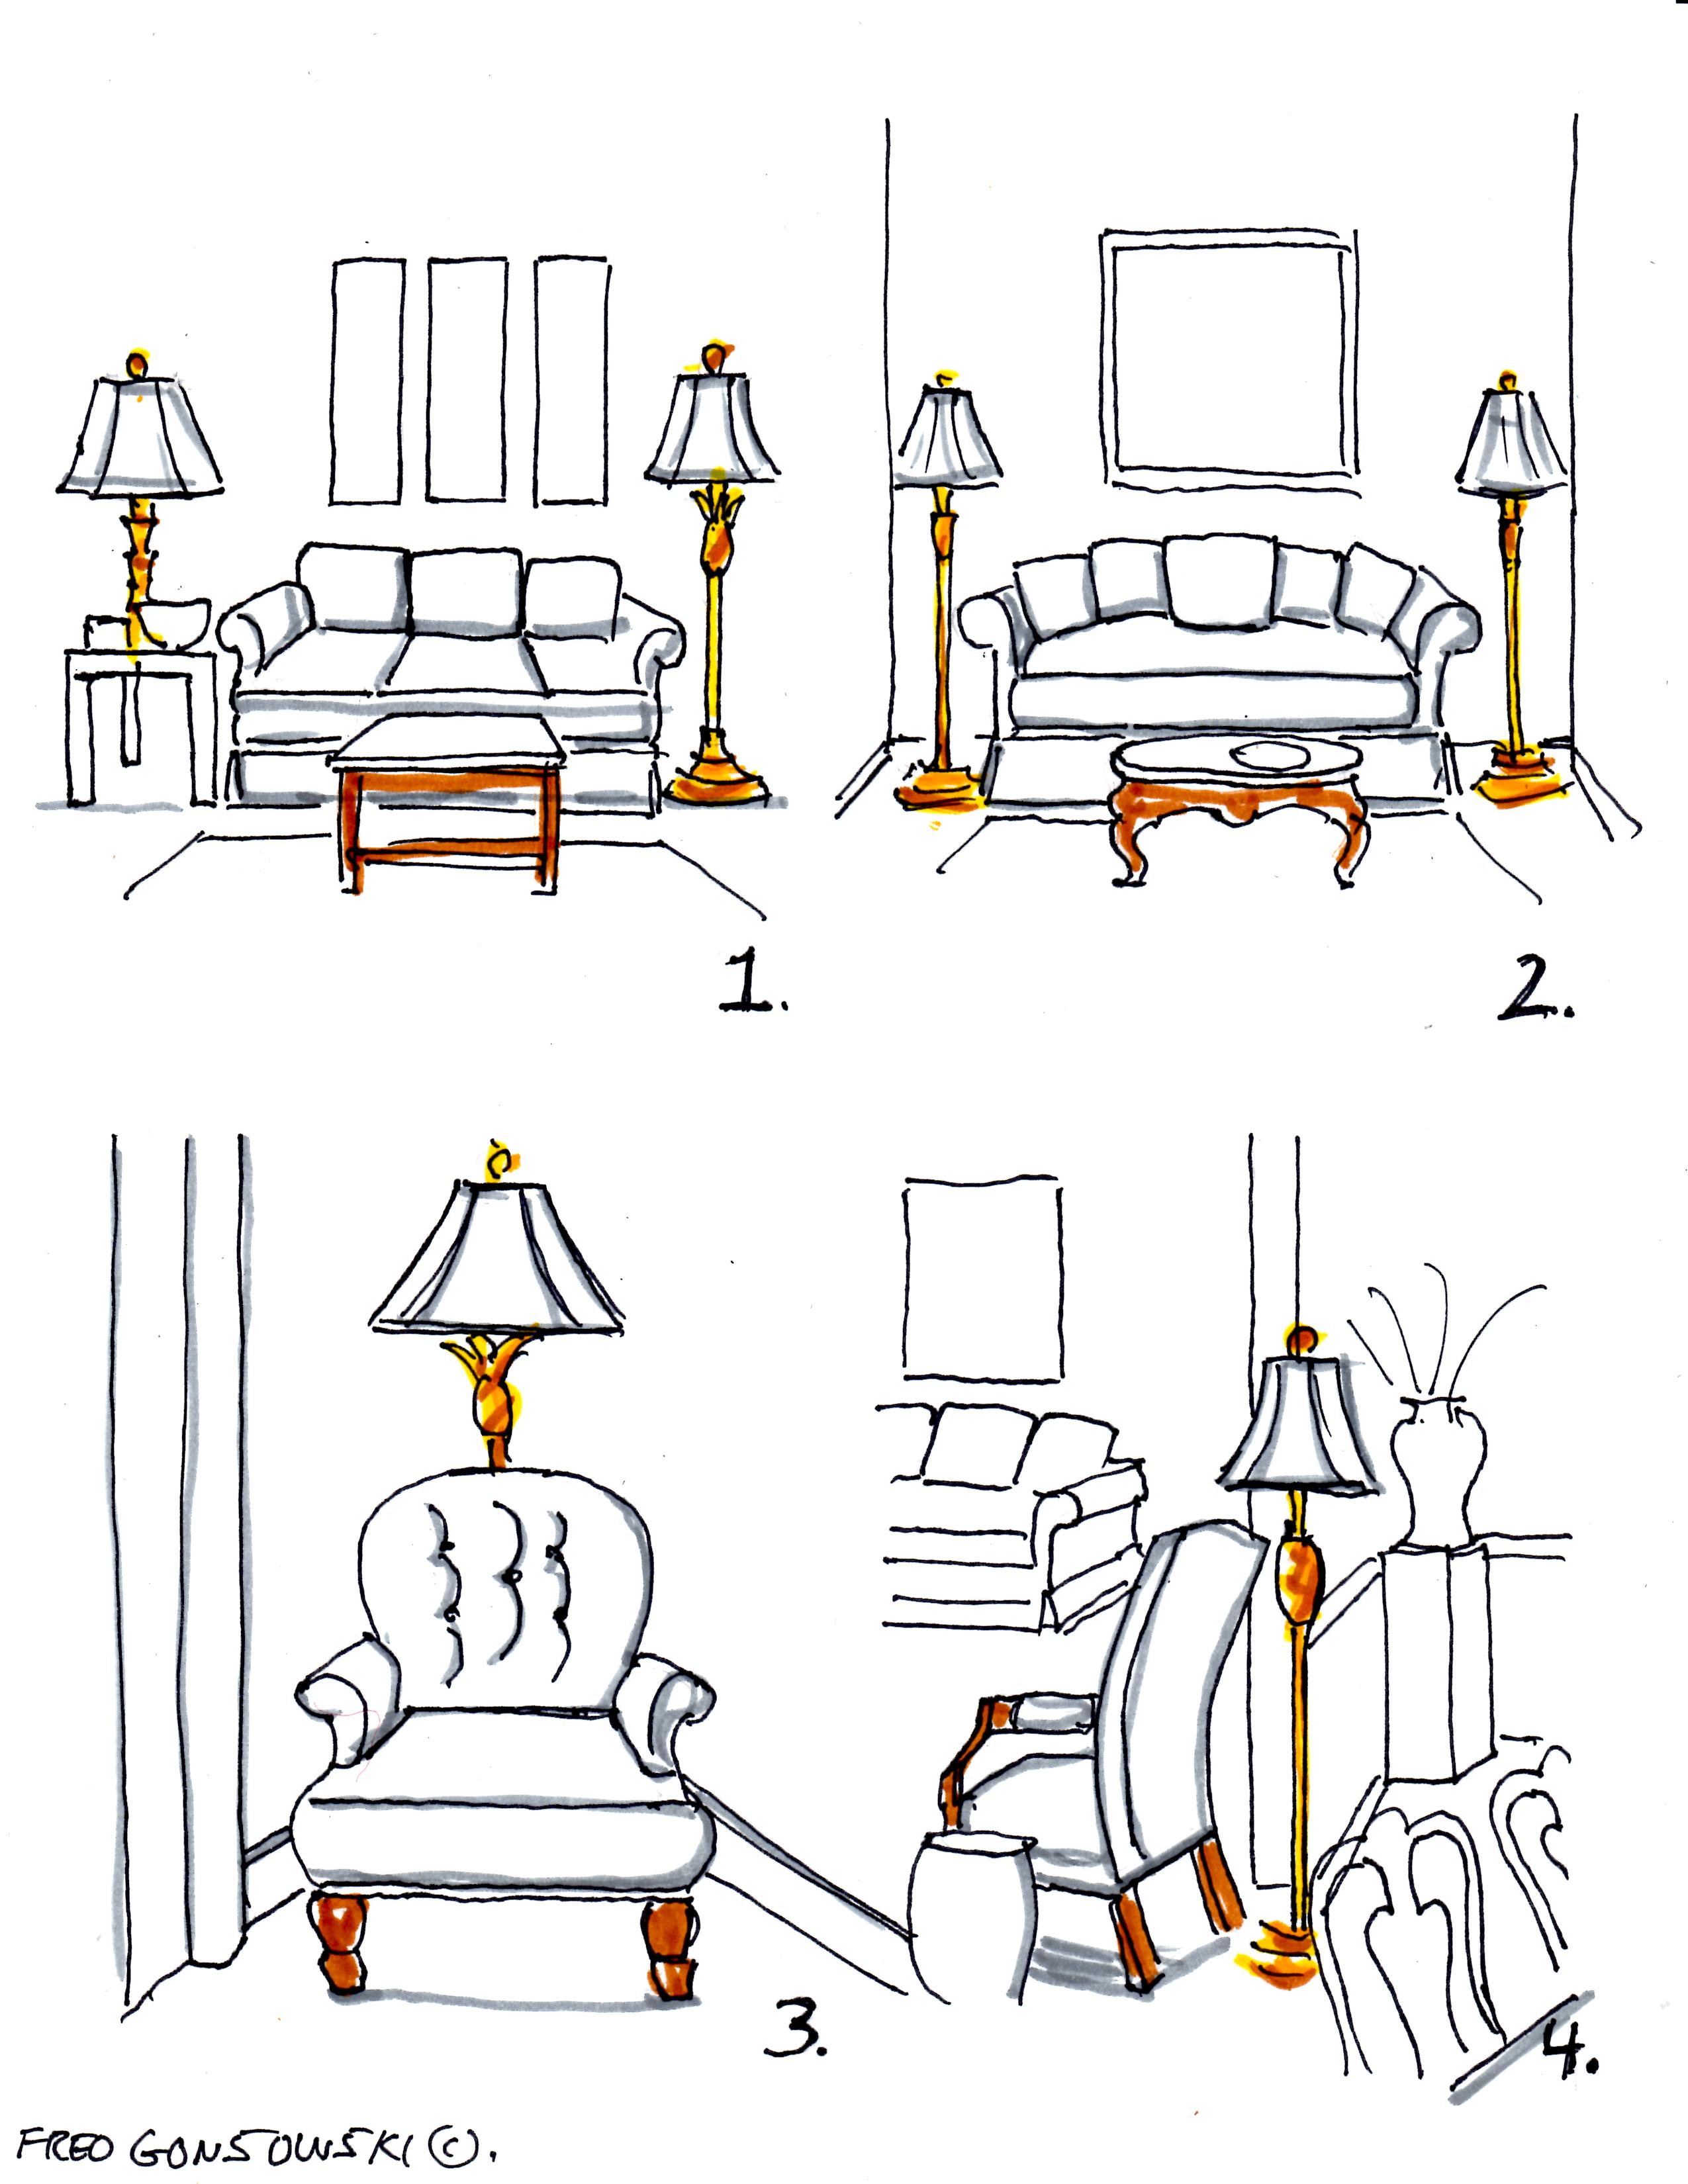 how tall should a table lamp be next to sofa american furniture warehouse warranty the answer can you put floor